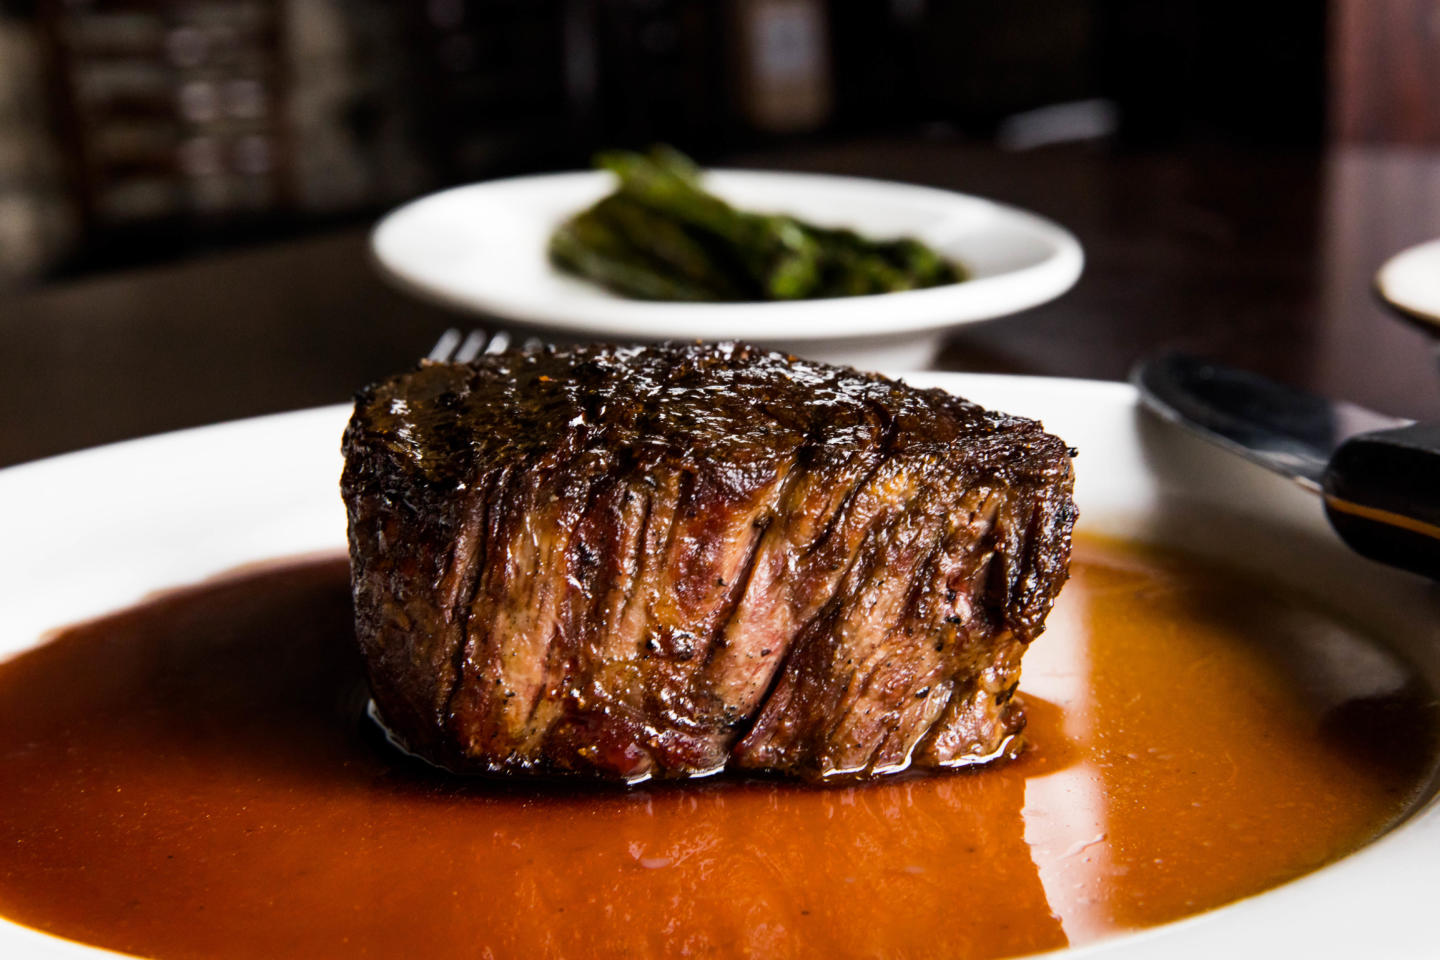 Filet of Beef on a plate - Easter Twin Cities